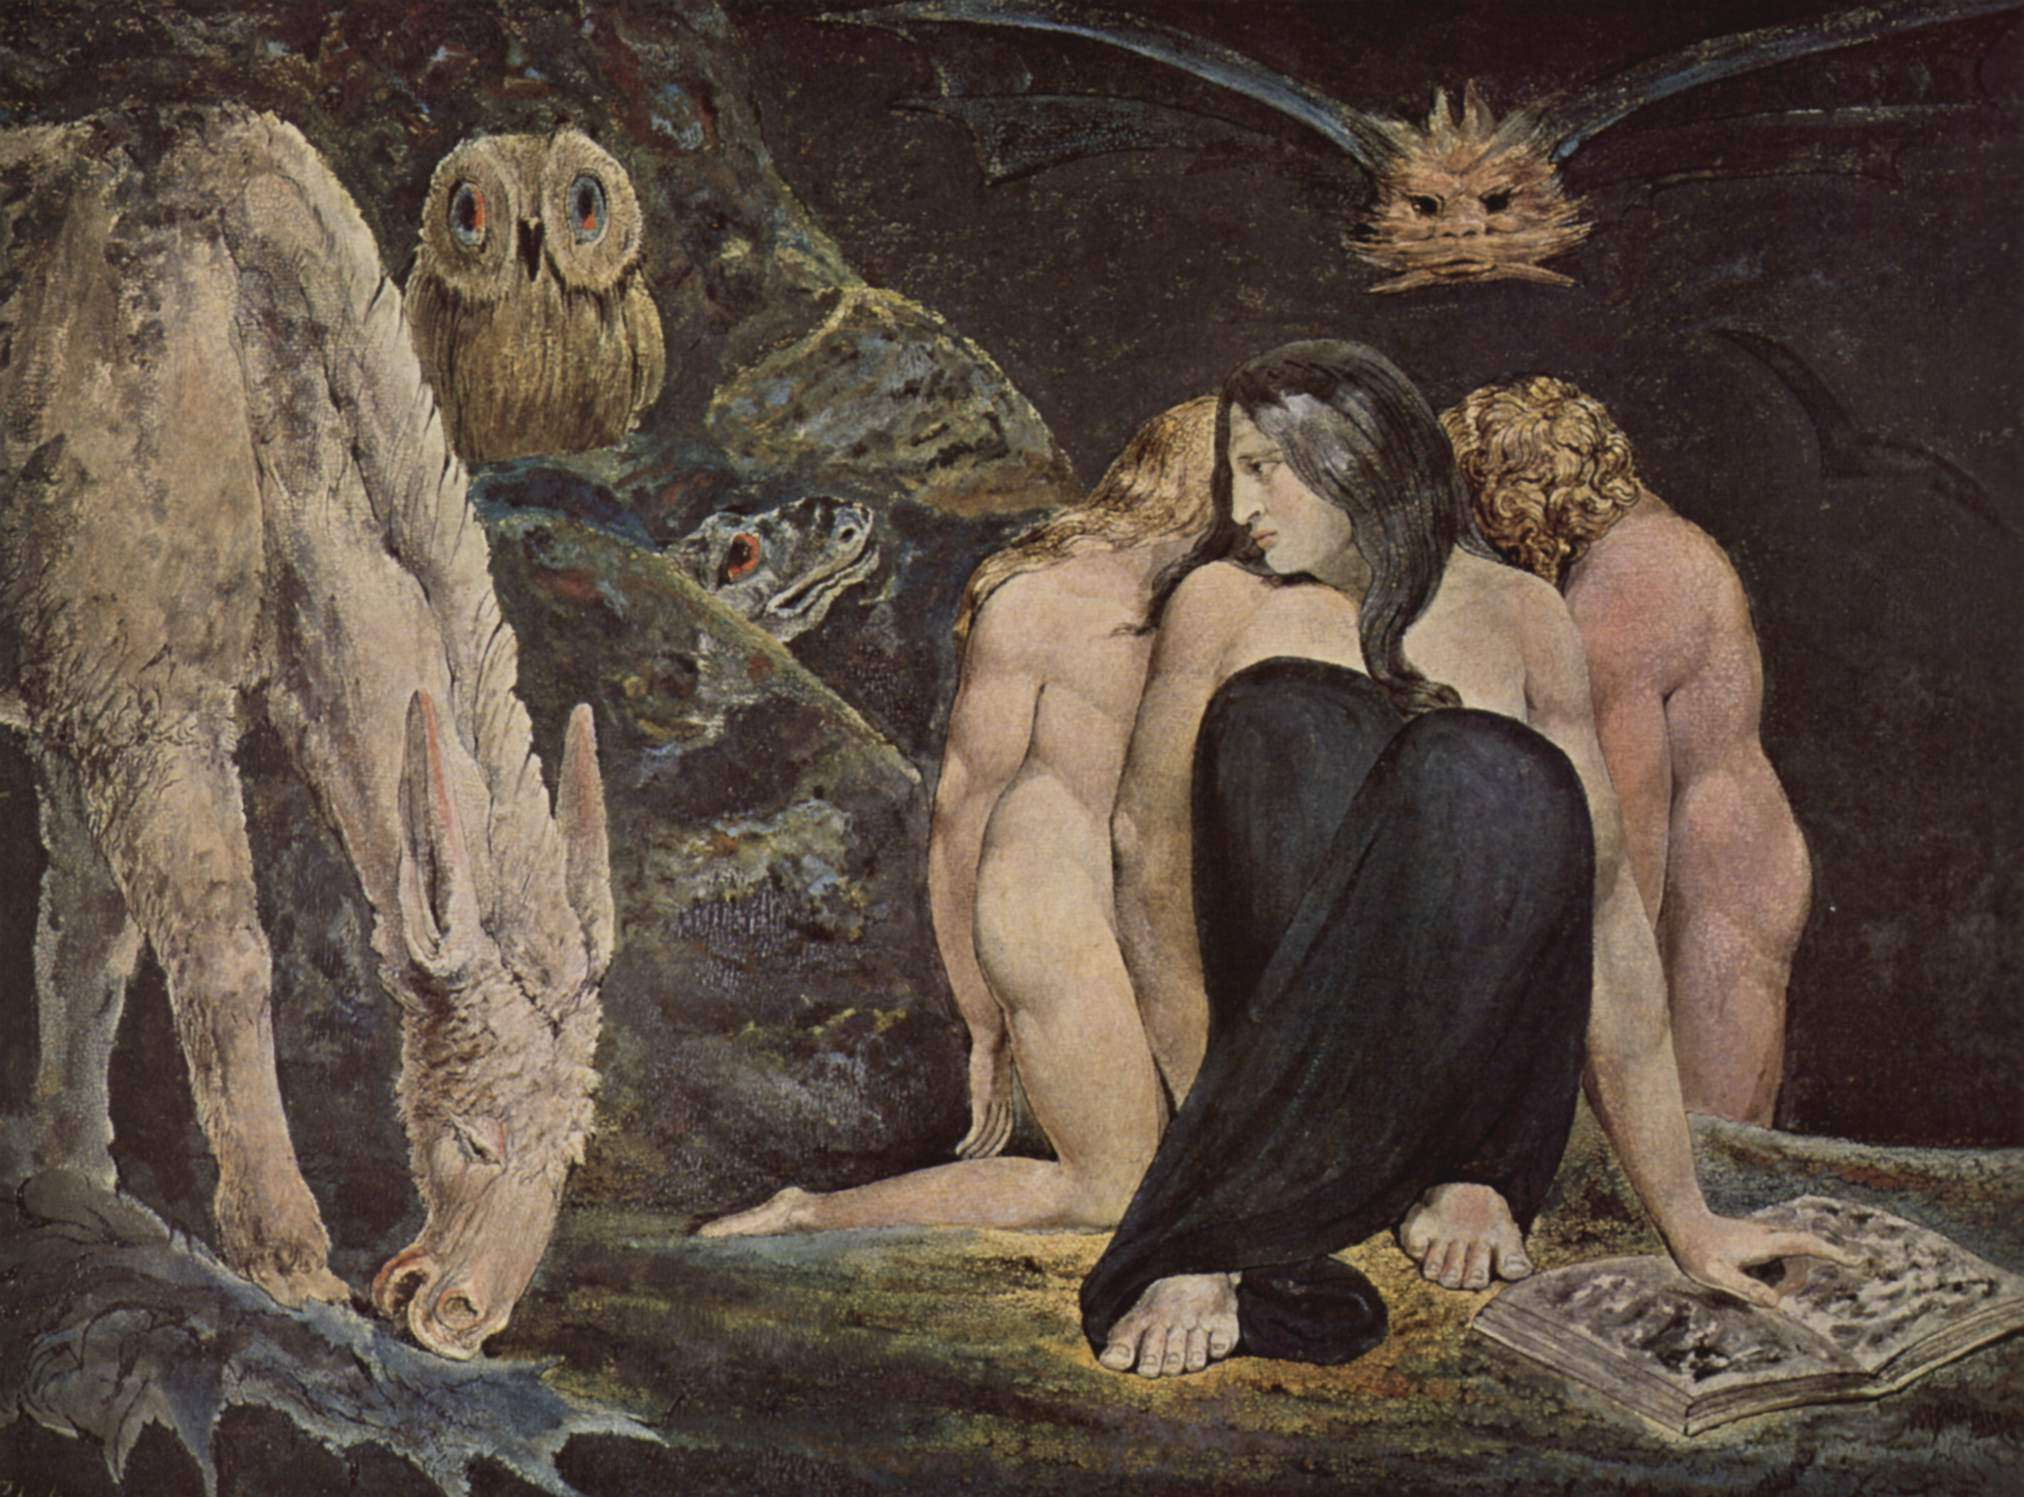 William Blake, The Triple Hecate.